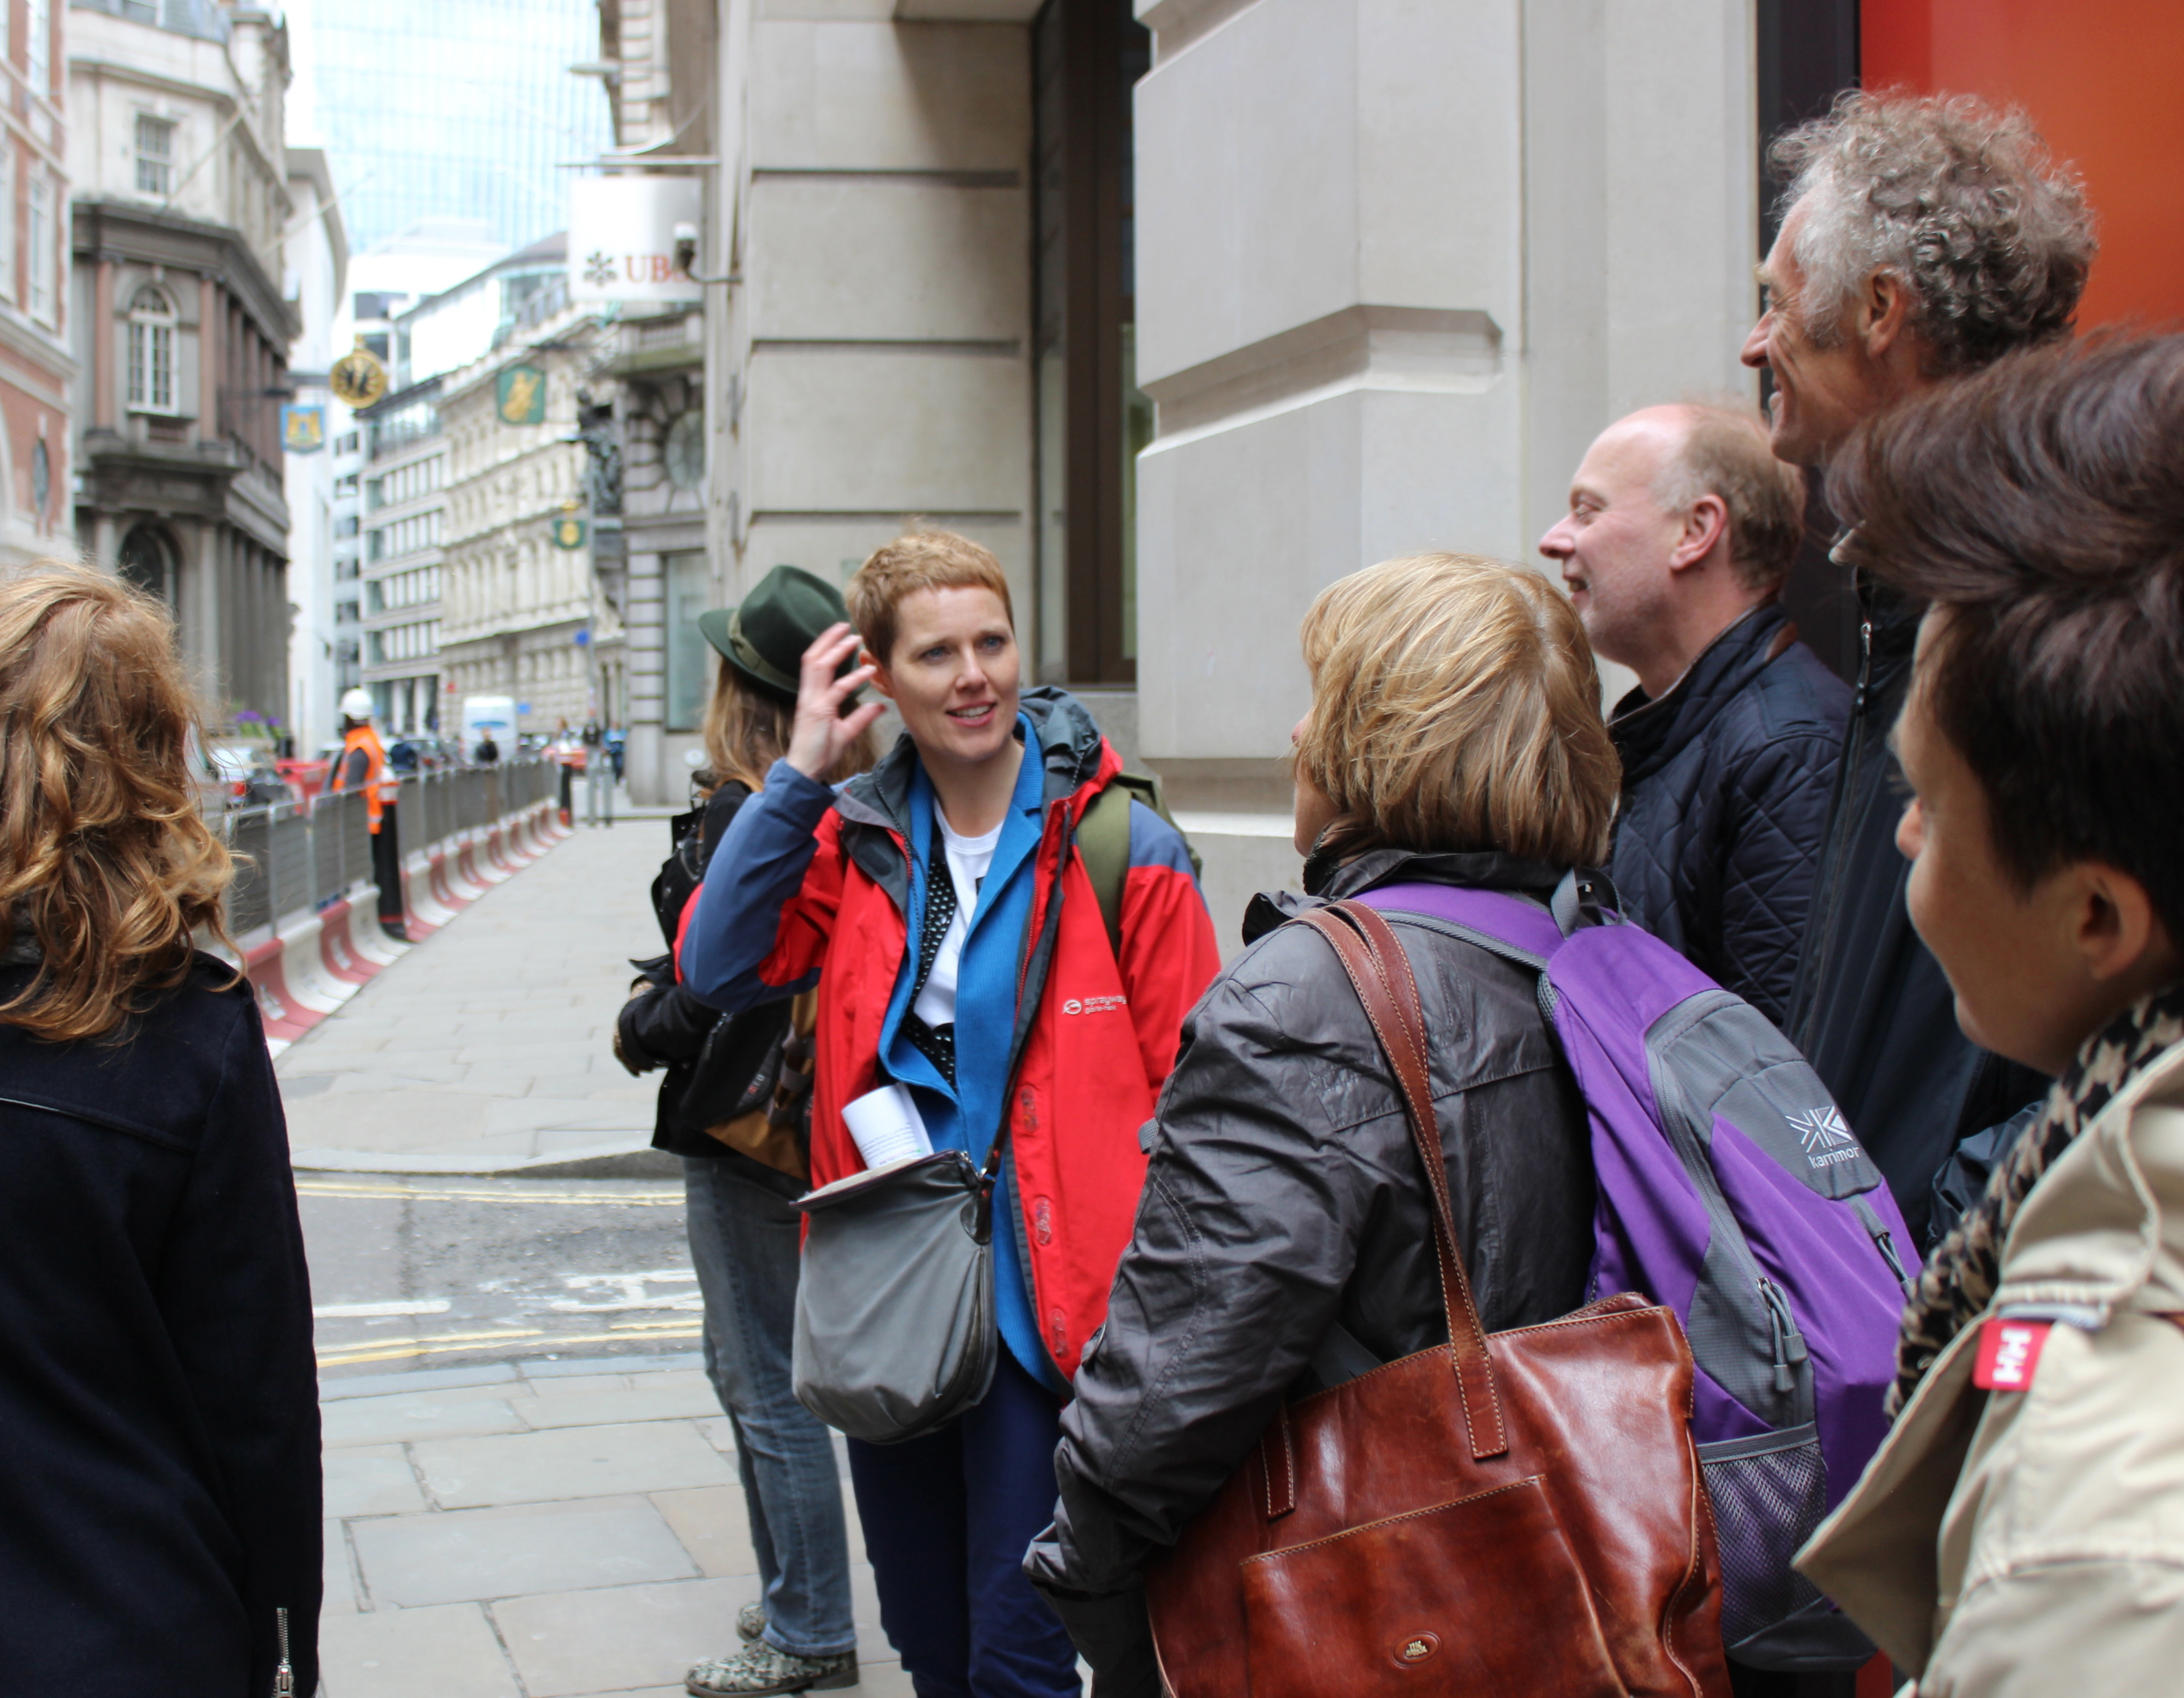 The London Ear Guided Walk